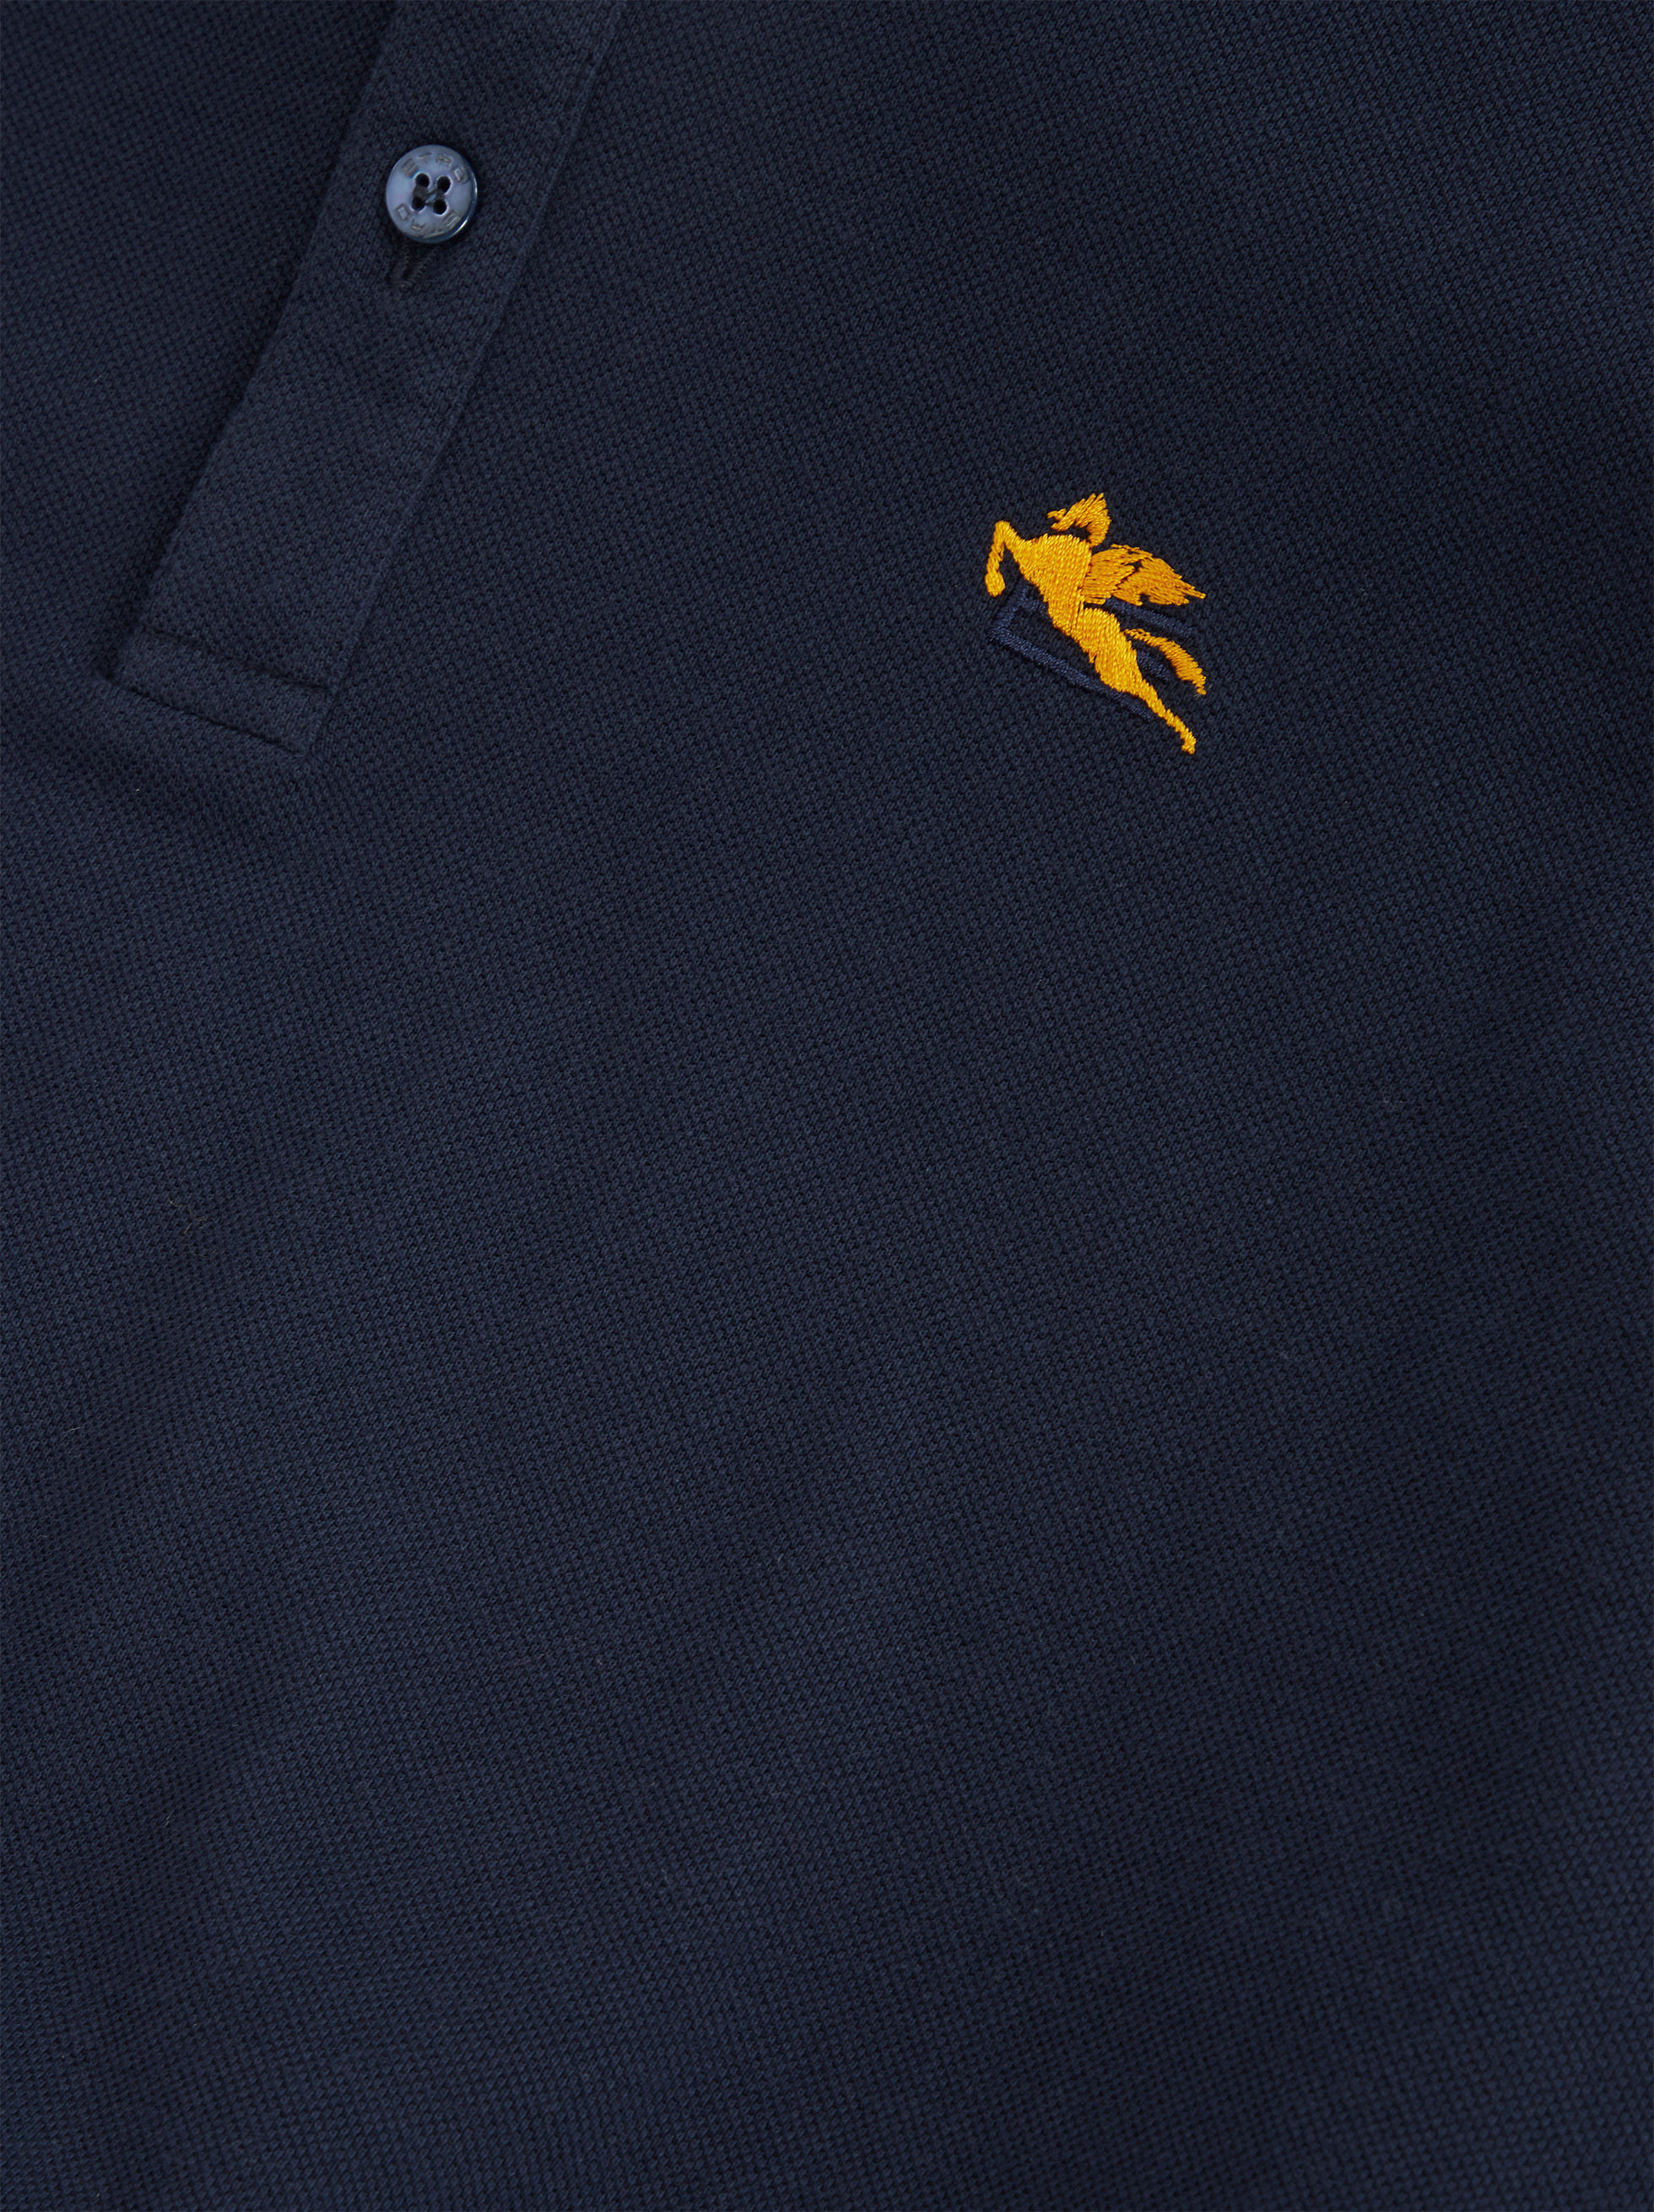 PIQUET POLO SHIRT WITH EMBROIDERED PEGASO